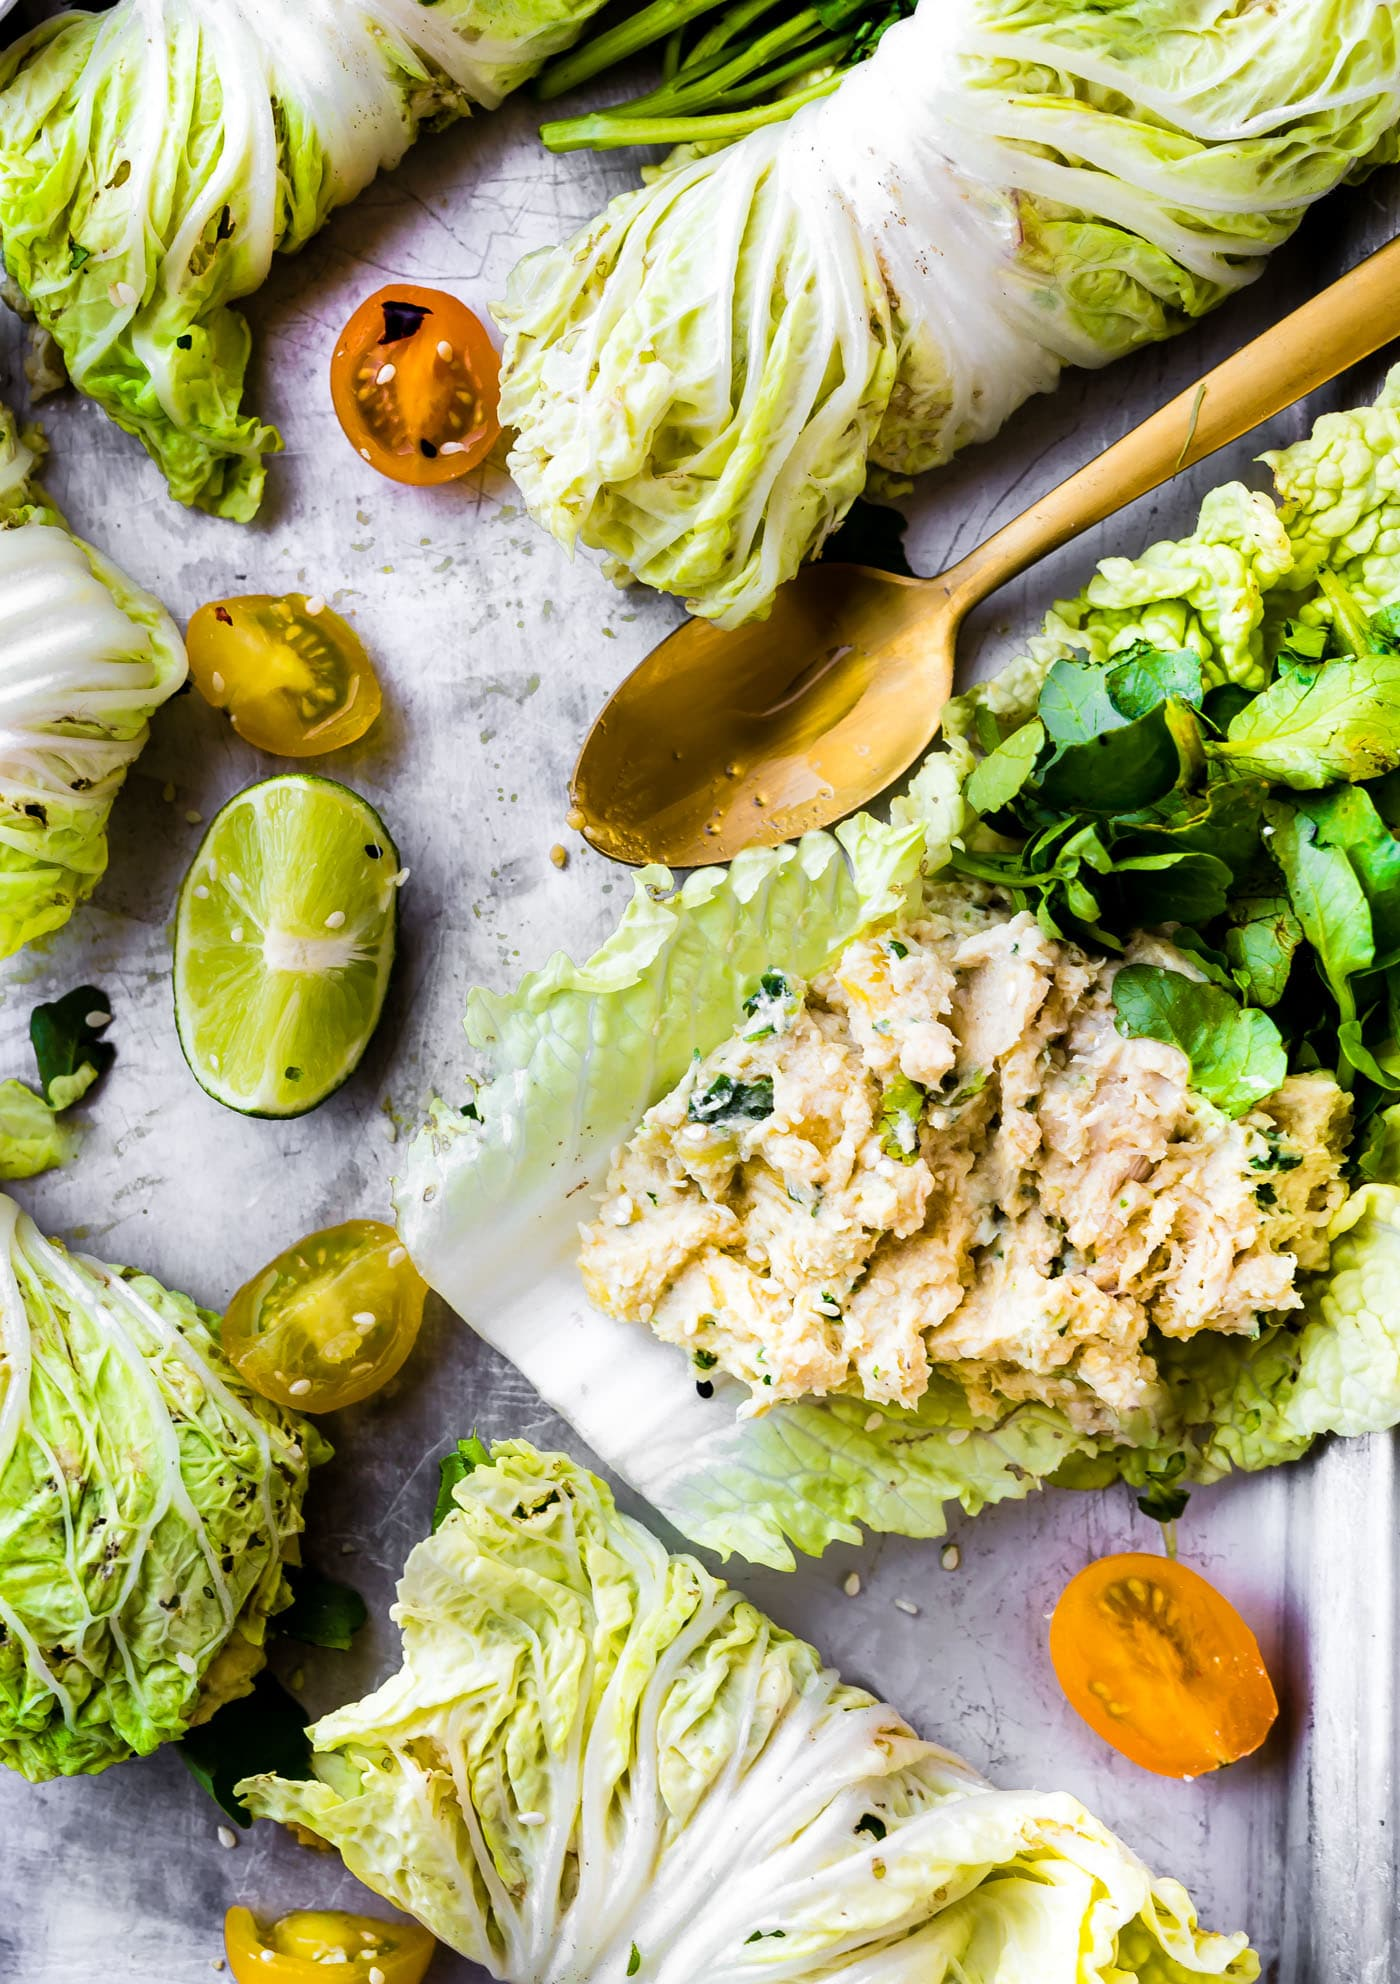 Perfect as a handy lunch or light Miso Mango Chicken Salad Cabbage wraps are the perfect light low carb lunch that's easy to make! A mango chicken salad that's mayo free, paleo friendly, and flavorful! Spread the miso mango chicken salad mixture over napa cabbage, add a little bit of watercress, then firmly roll up! Bam, a perfectly handy lunch or light dinner!